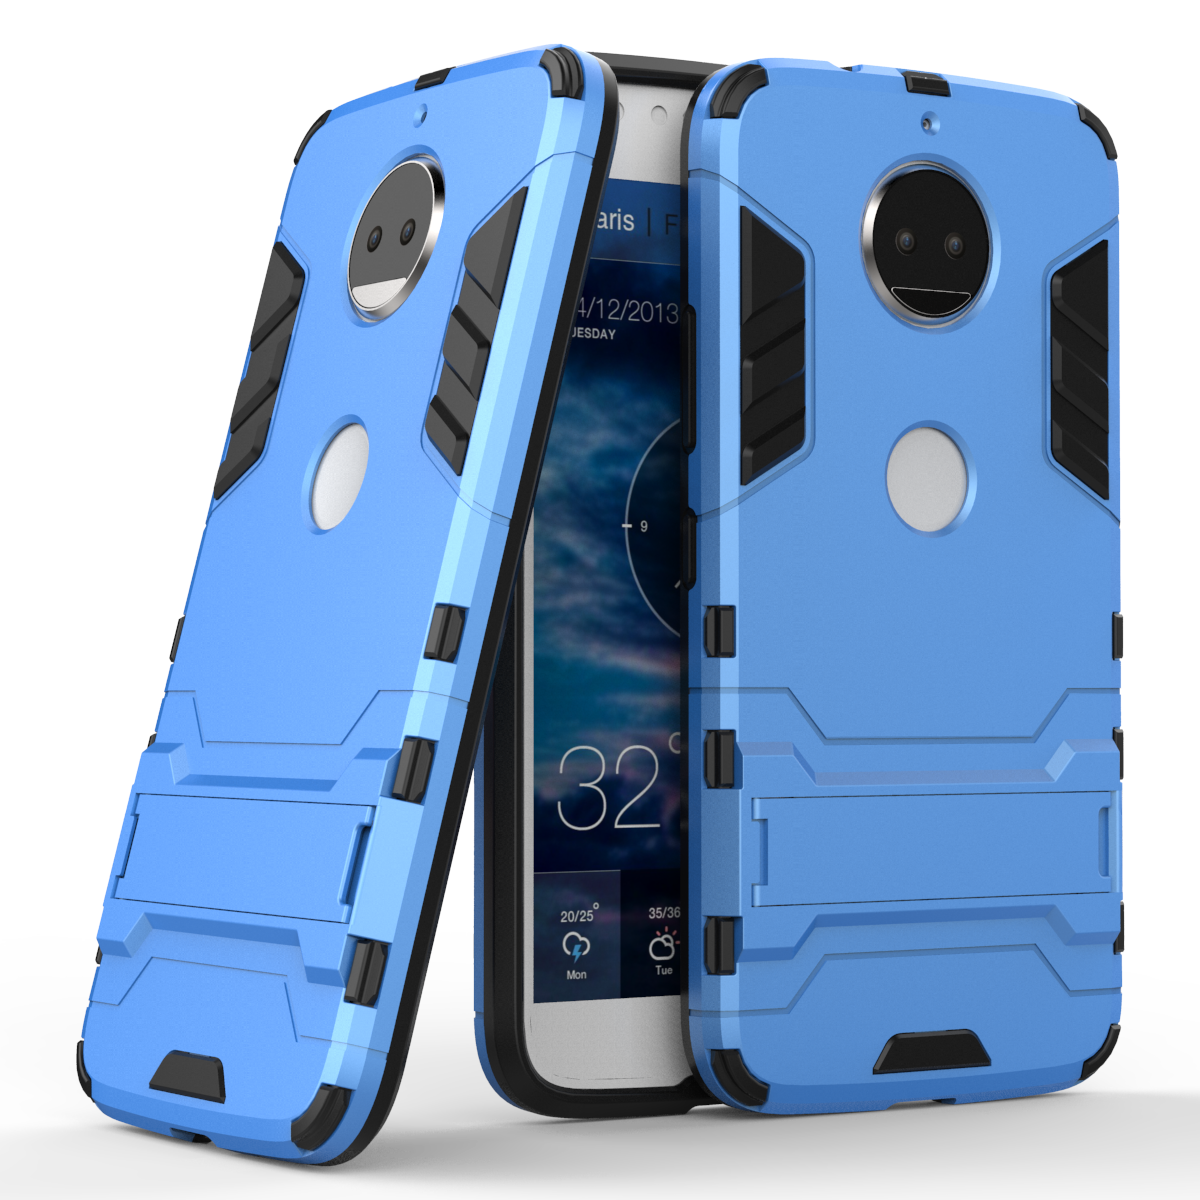 3D Shockproof Armor Cases For Motorola MOTO Z2 Play G6 Plus Play G5S G5 E5 Plus TPU Protective Hard Phone Cover Stand Shell